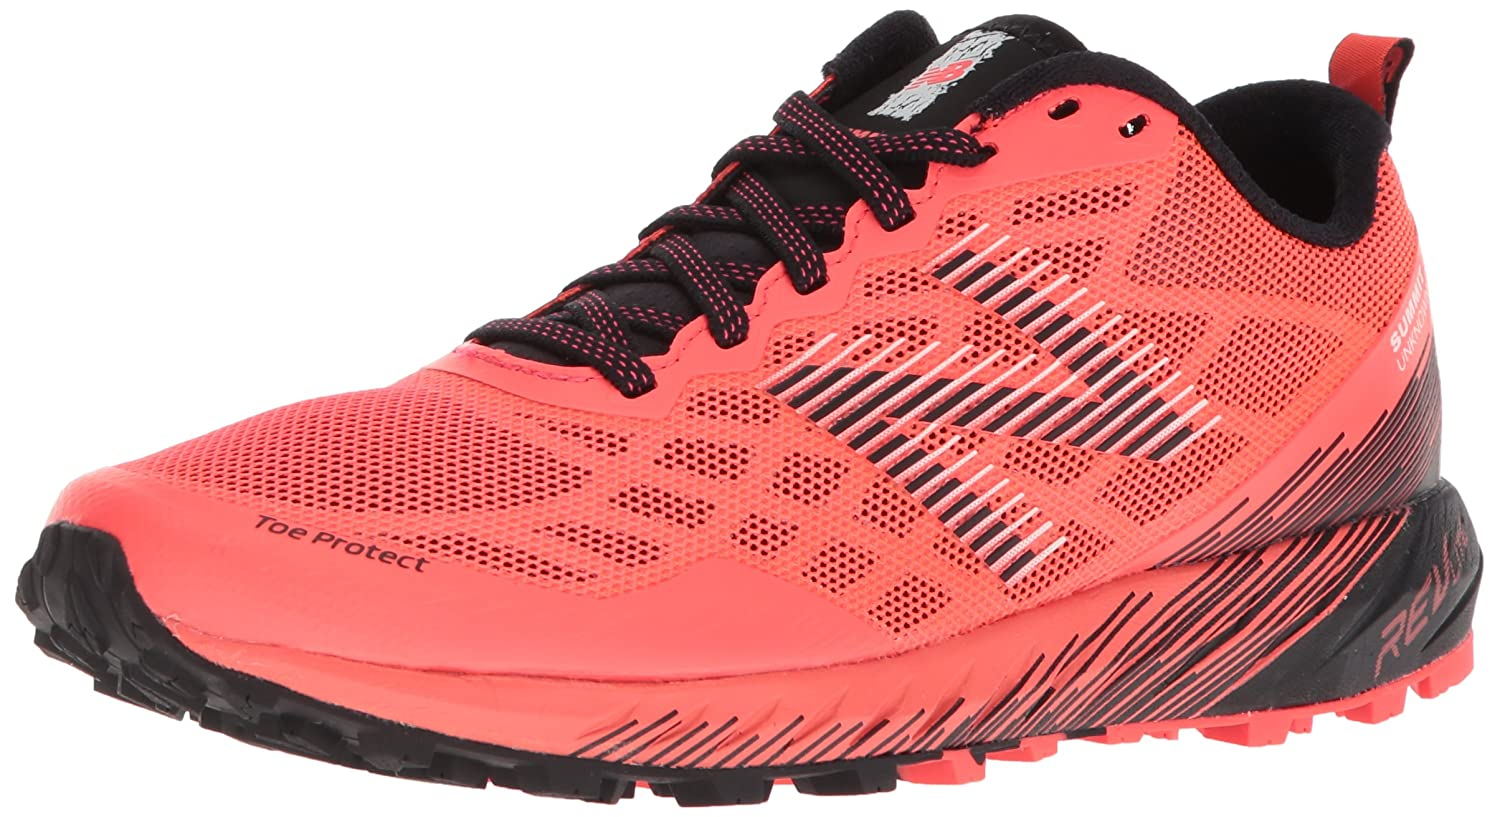 New Balance Women's Summit Unknown Trail Running Shoe B0751Q8LRB 5 D US|Pink/Black